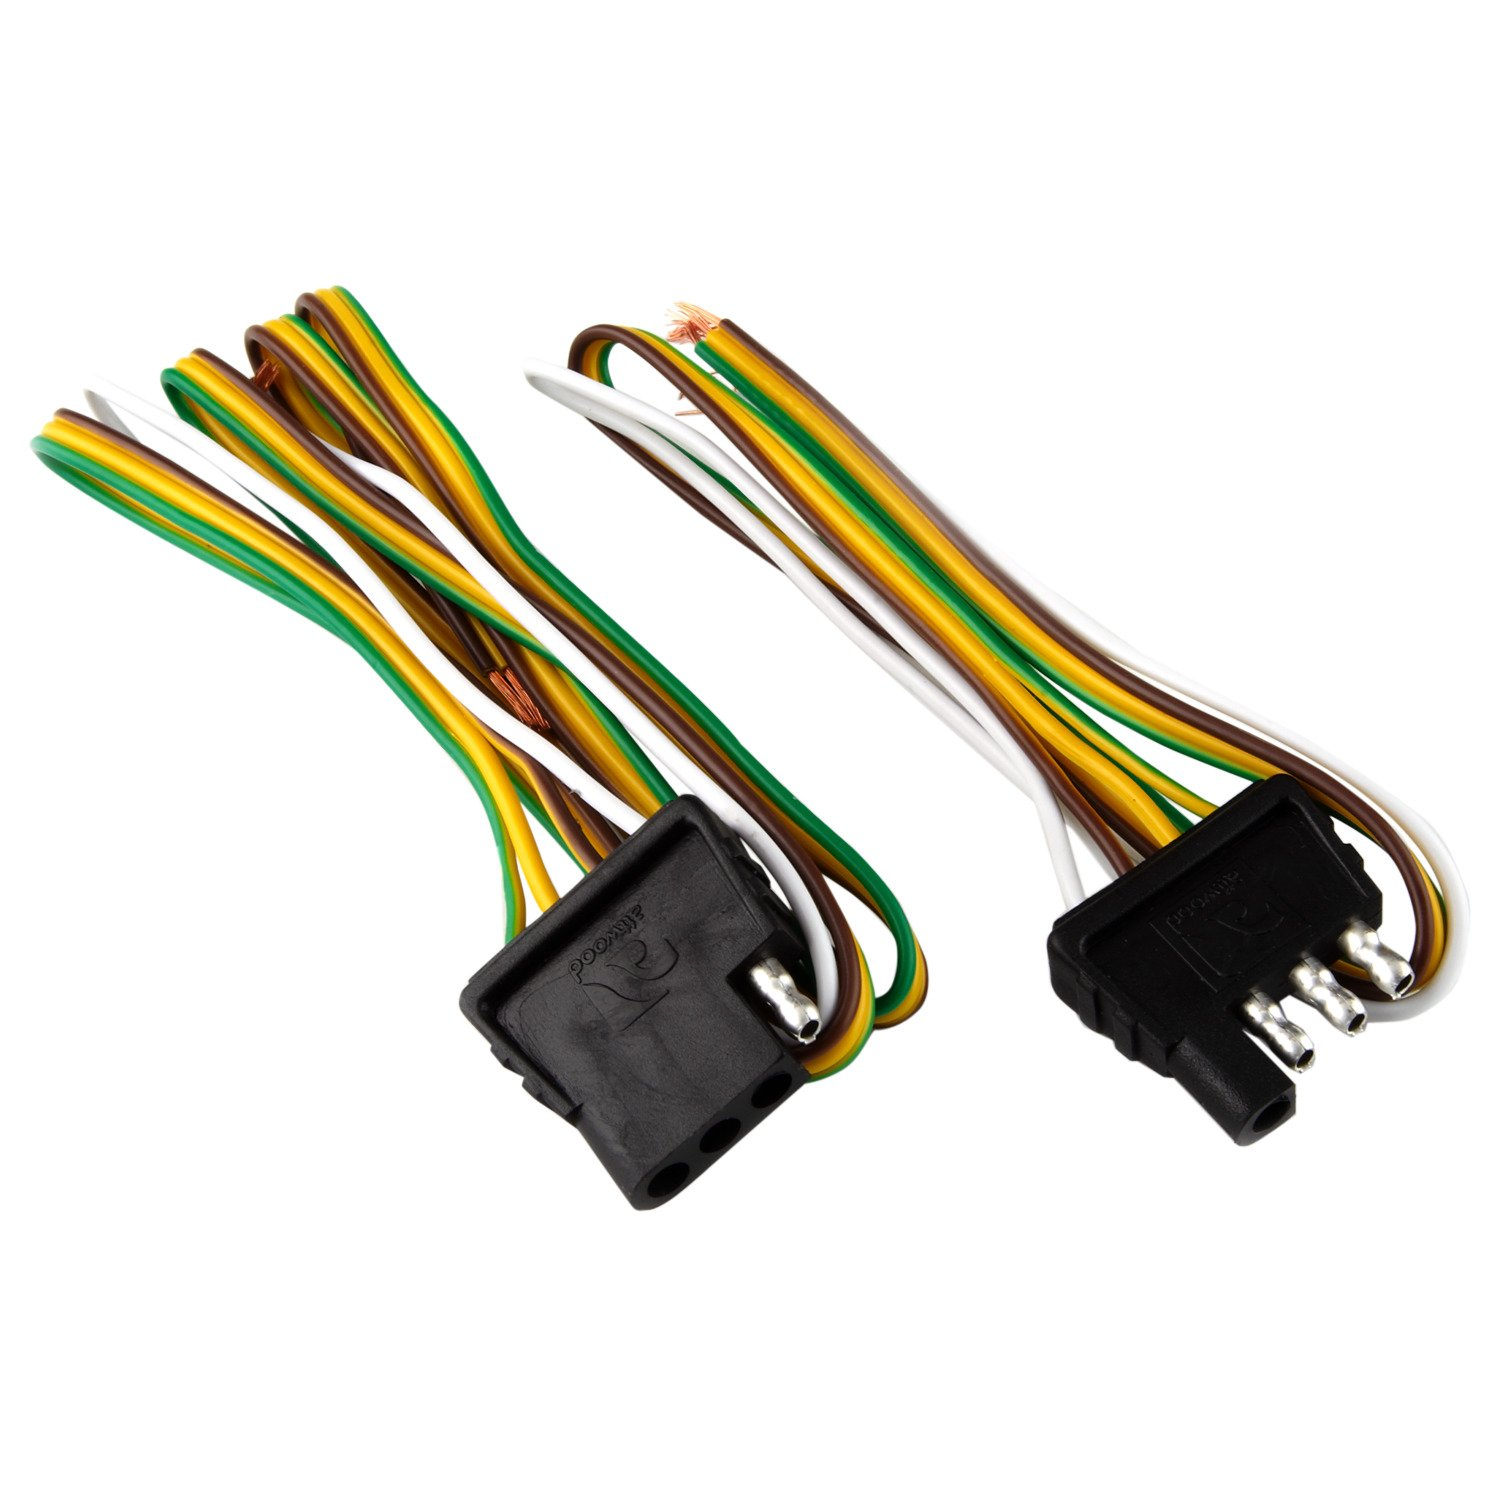 hight resolution of attwood 4 way flat wiring harness kit for vehicles and trailers 4 way flat wiring harness diagram 4 flat wiring harness